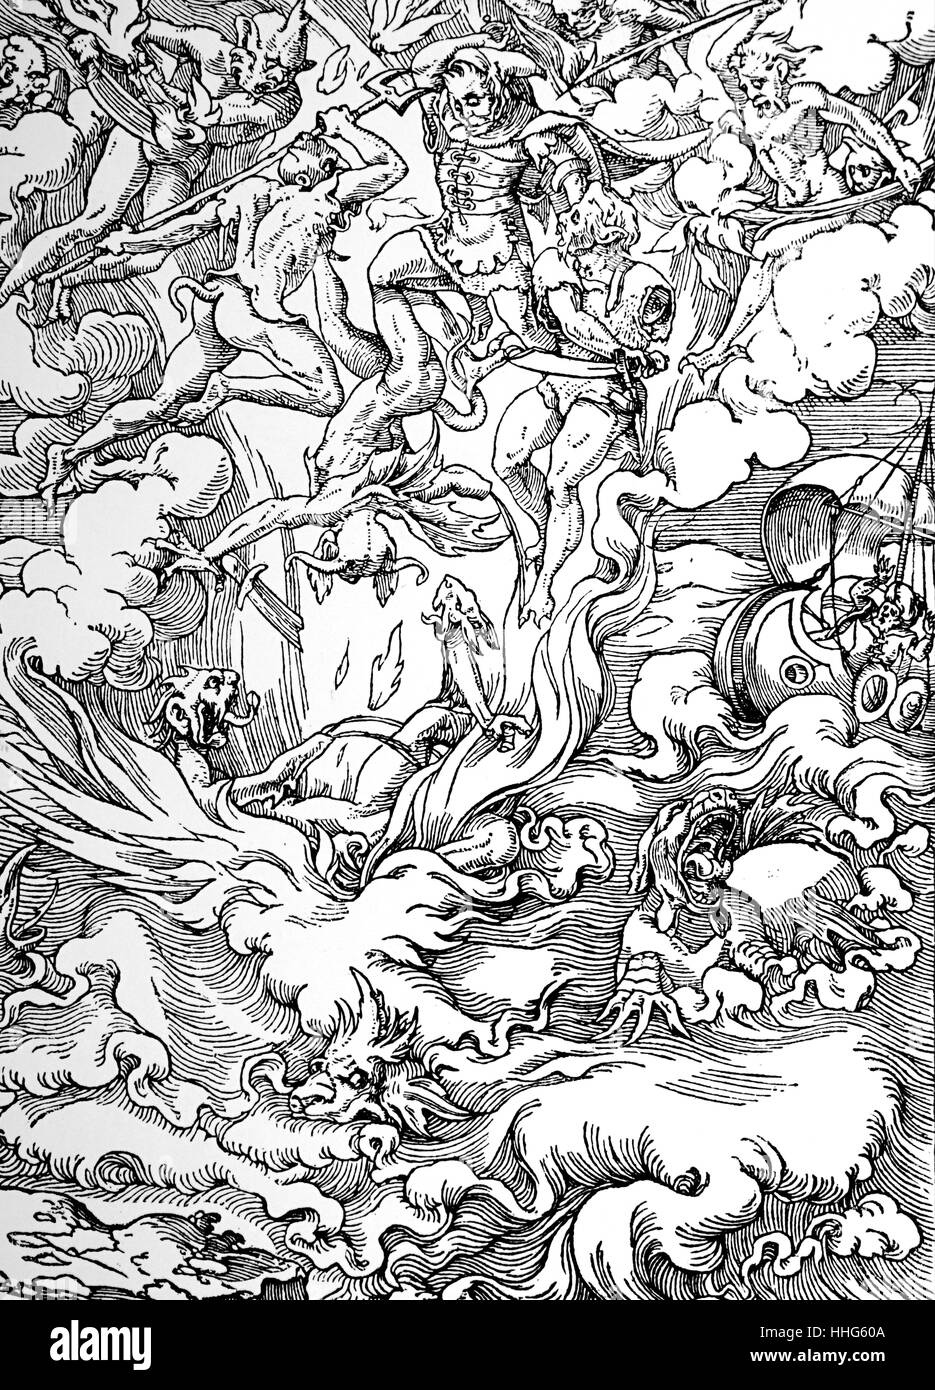 The Last Judgement woodcut by Jean Cousin. - Stock Image